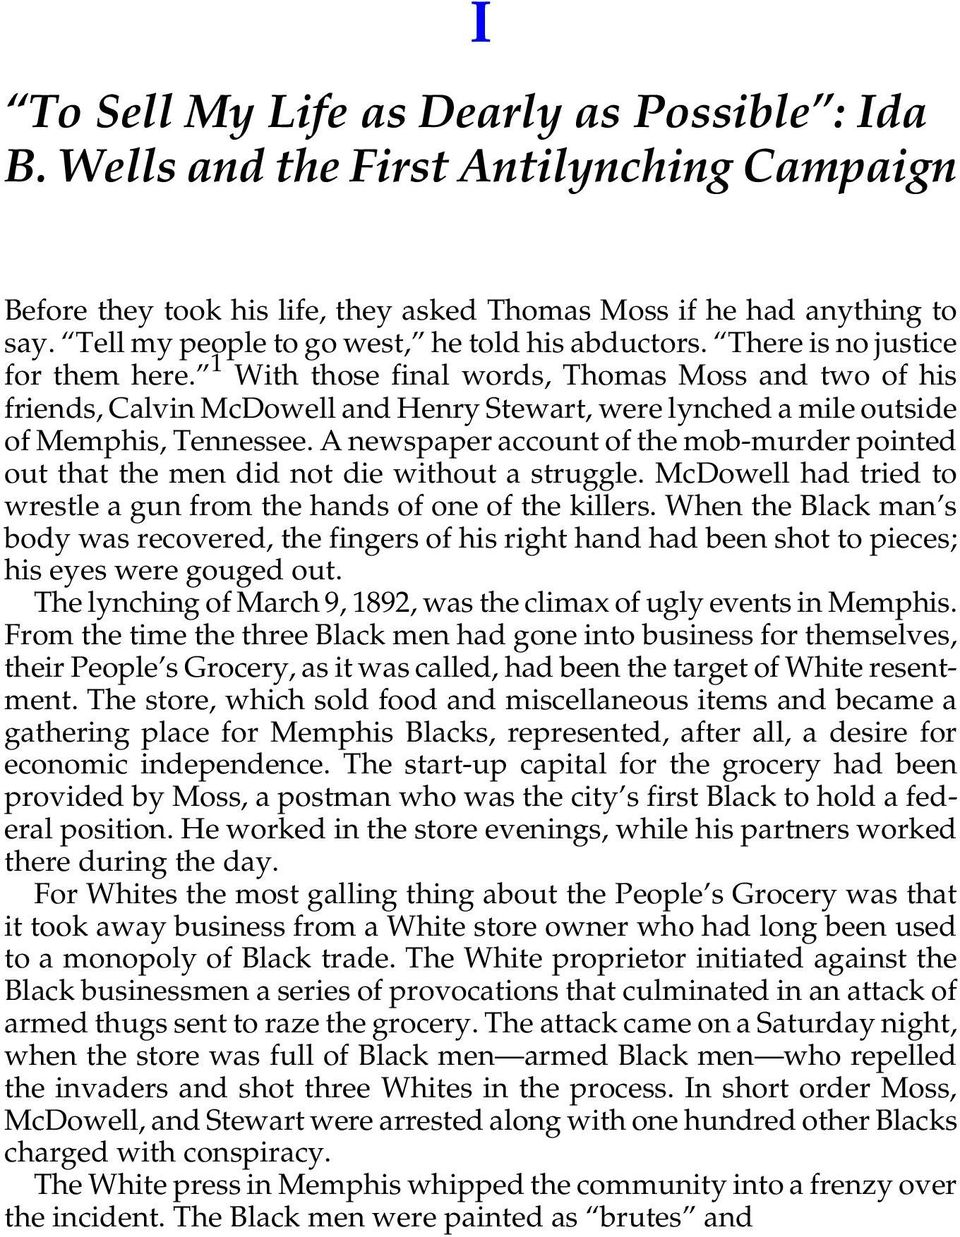 1 With those final words, Thomas Moss and two of his friends, Calvin McDowell and Henry Stewart, were lynched a mile outside of Memphis, Tennessee.